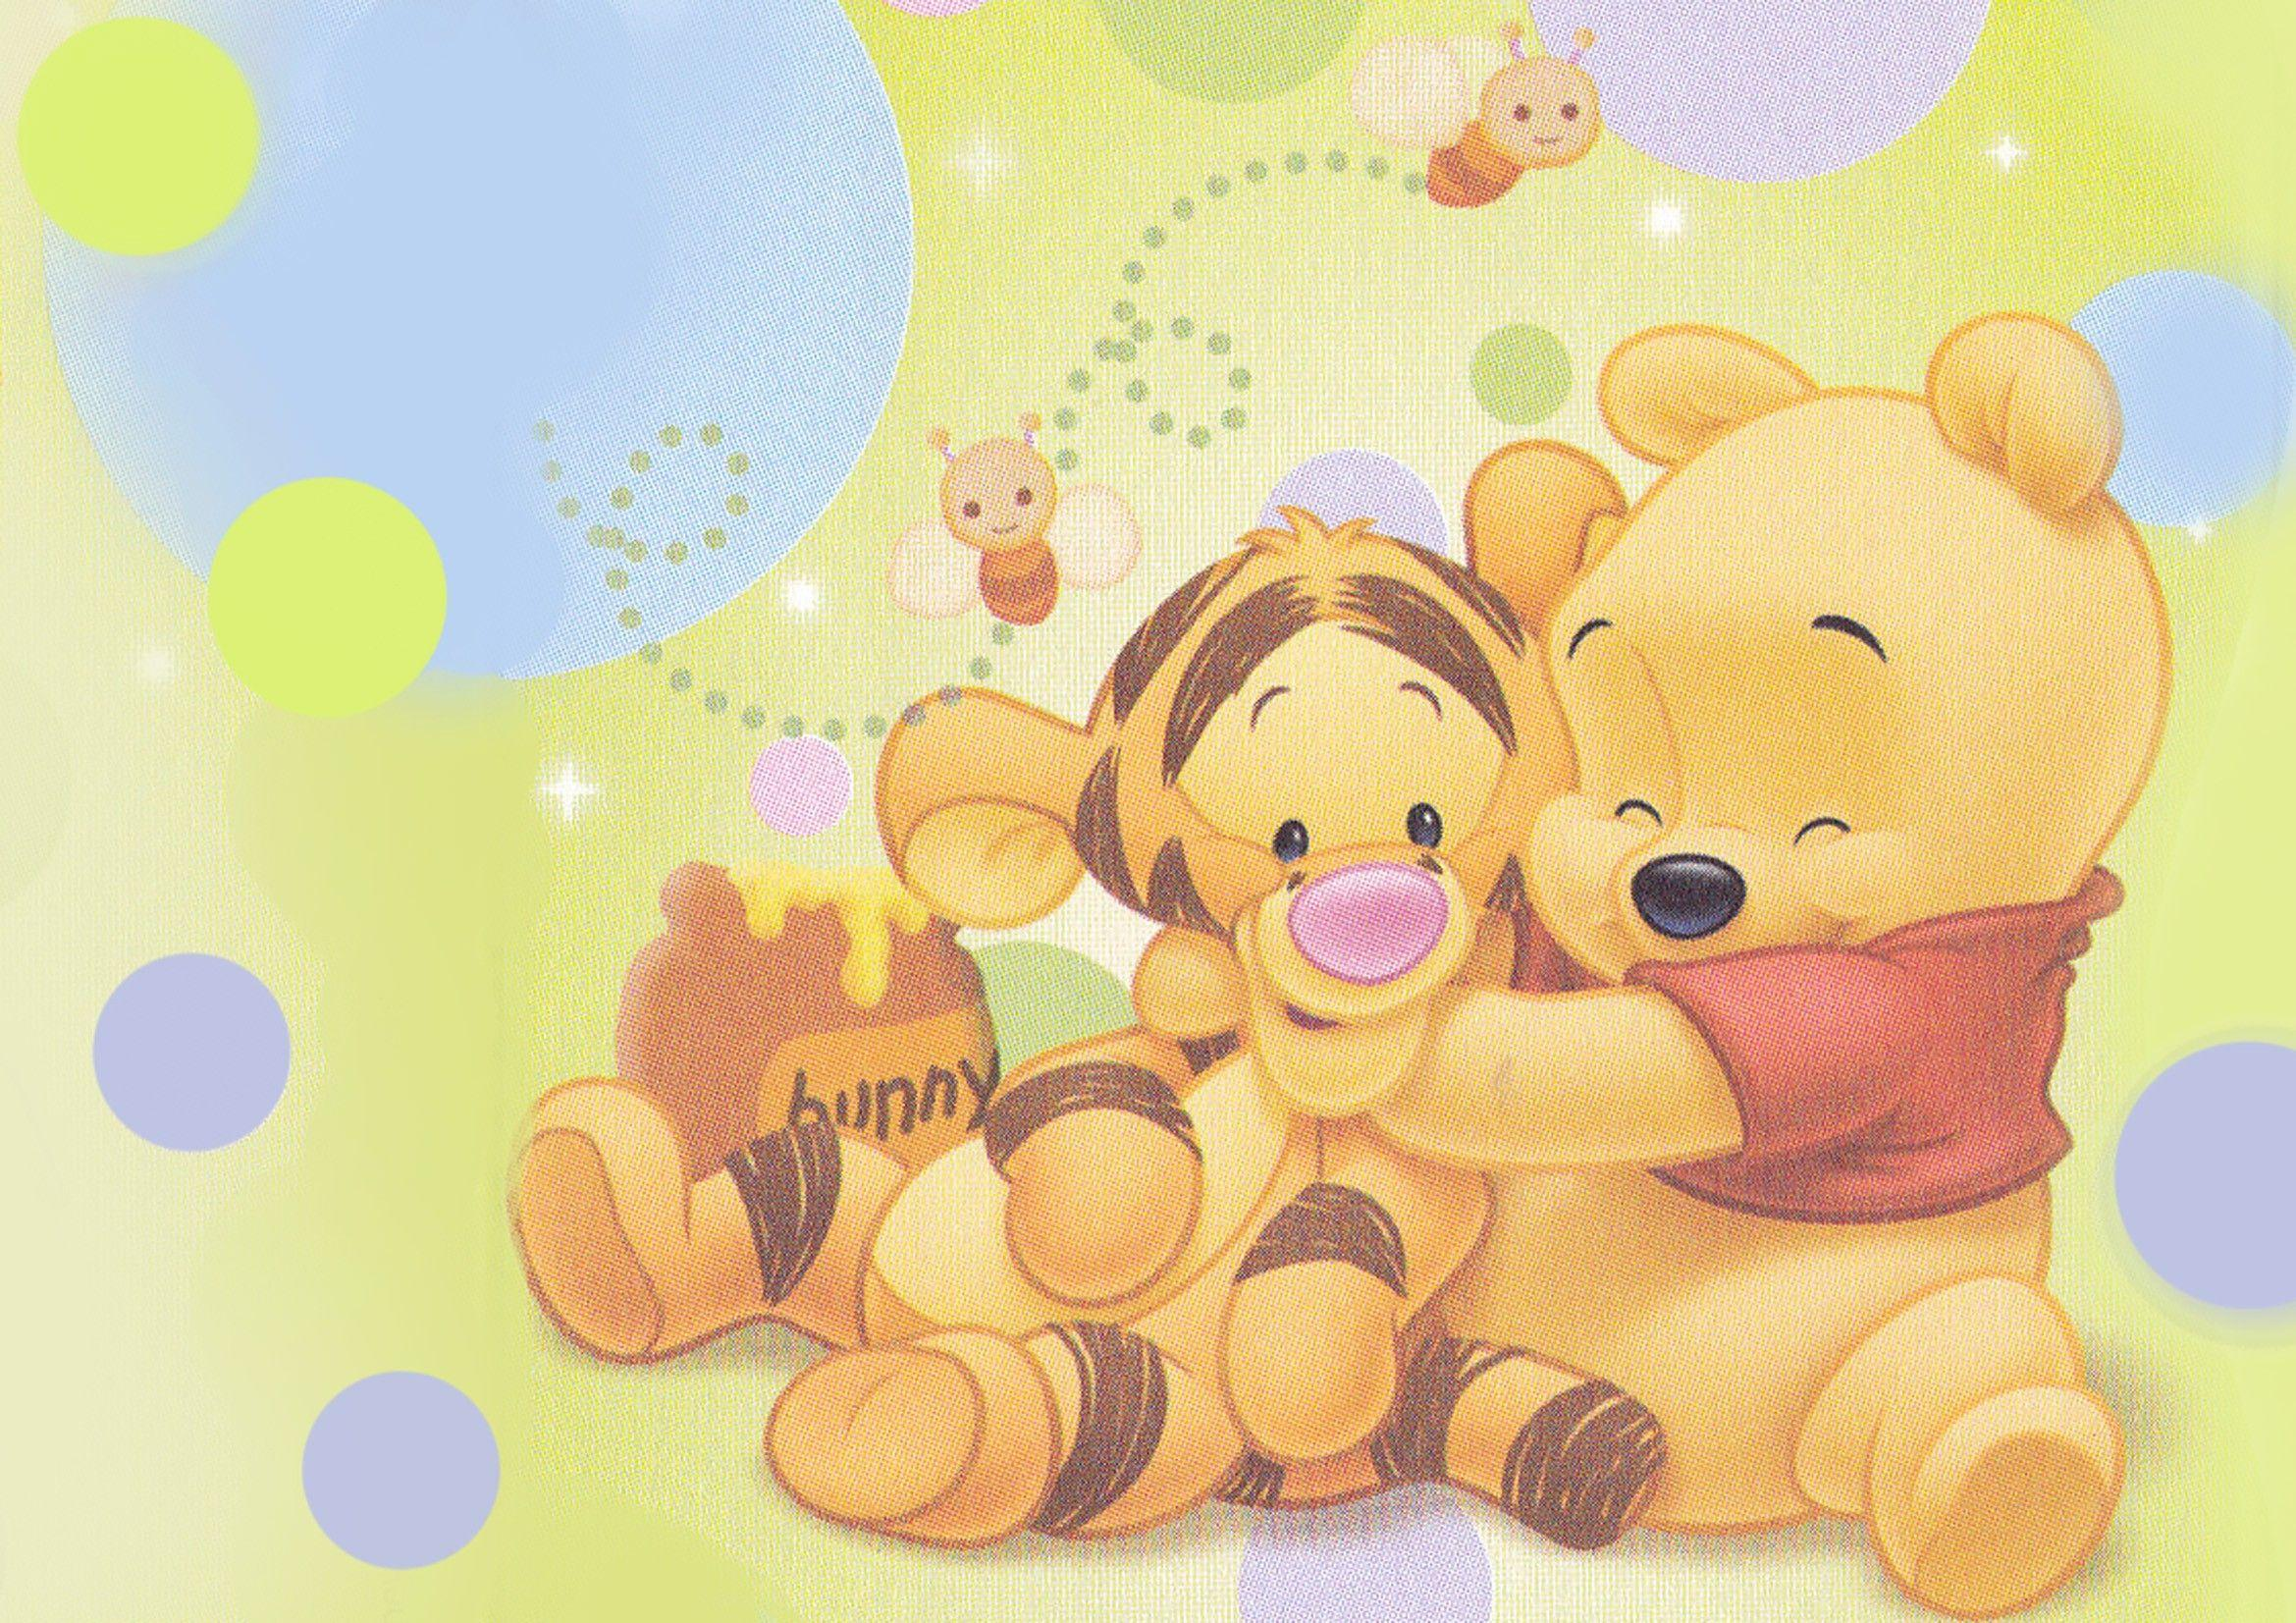 This is a graphic of Priceless Winnie the Pooh as a Baby